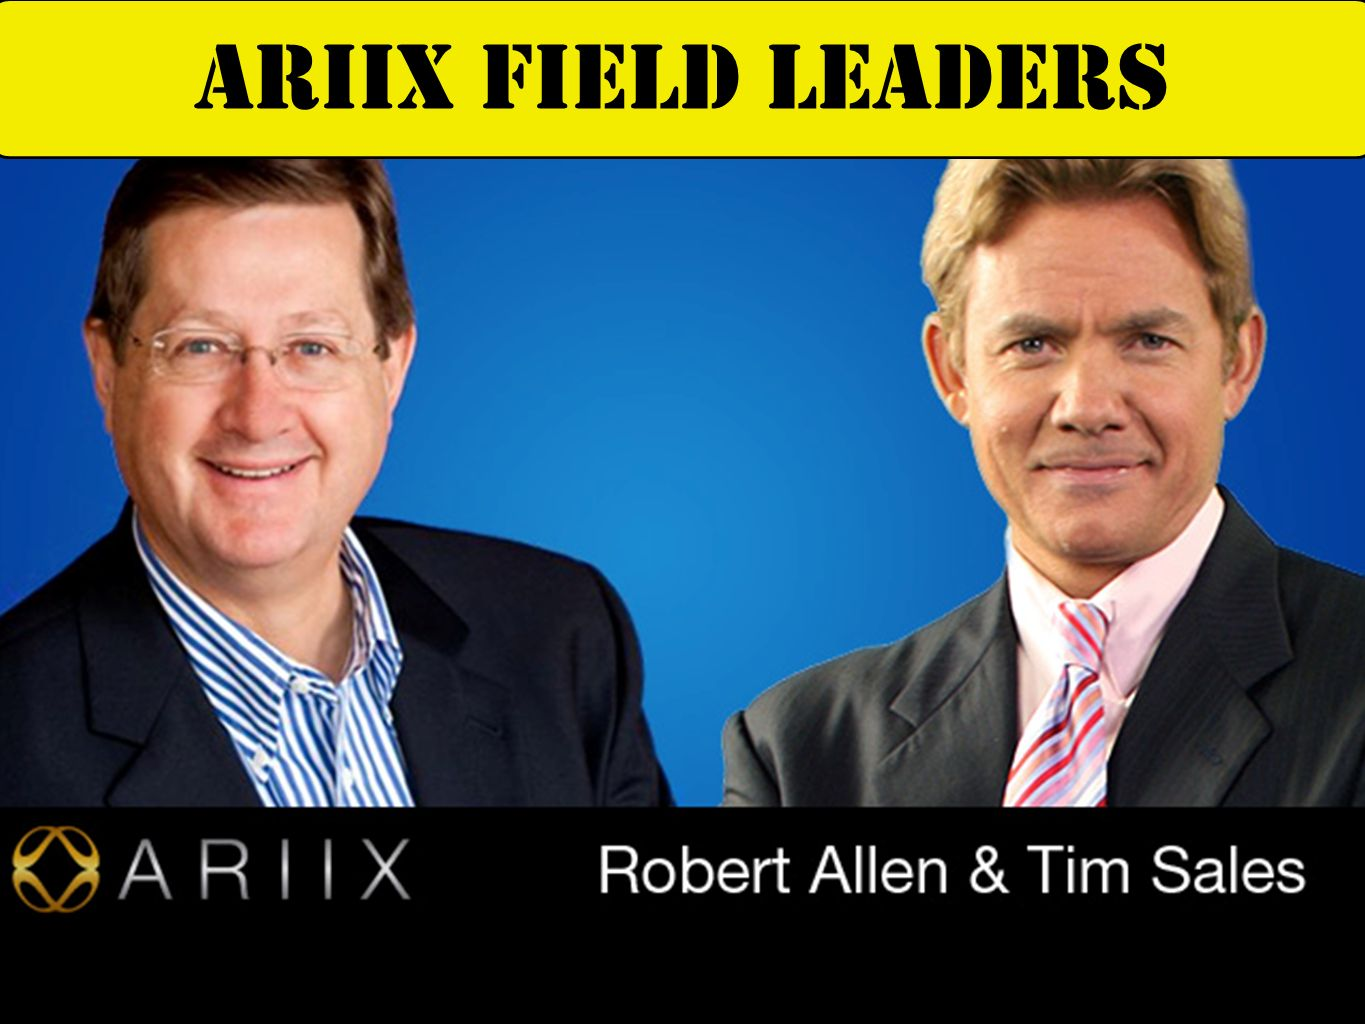 ARIIX FIELD LEADERS